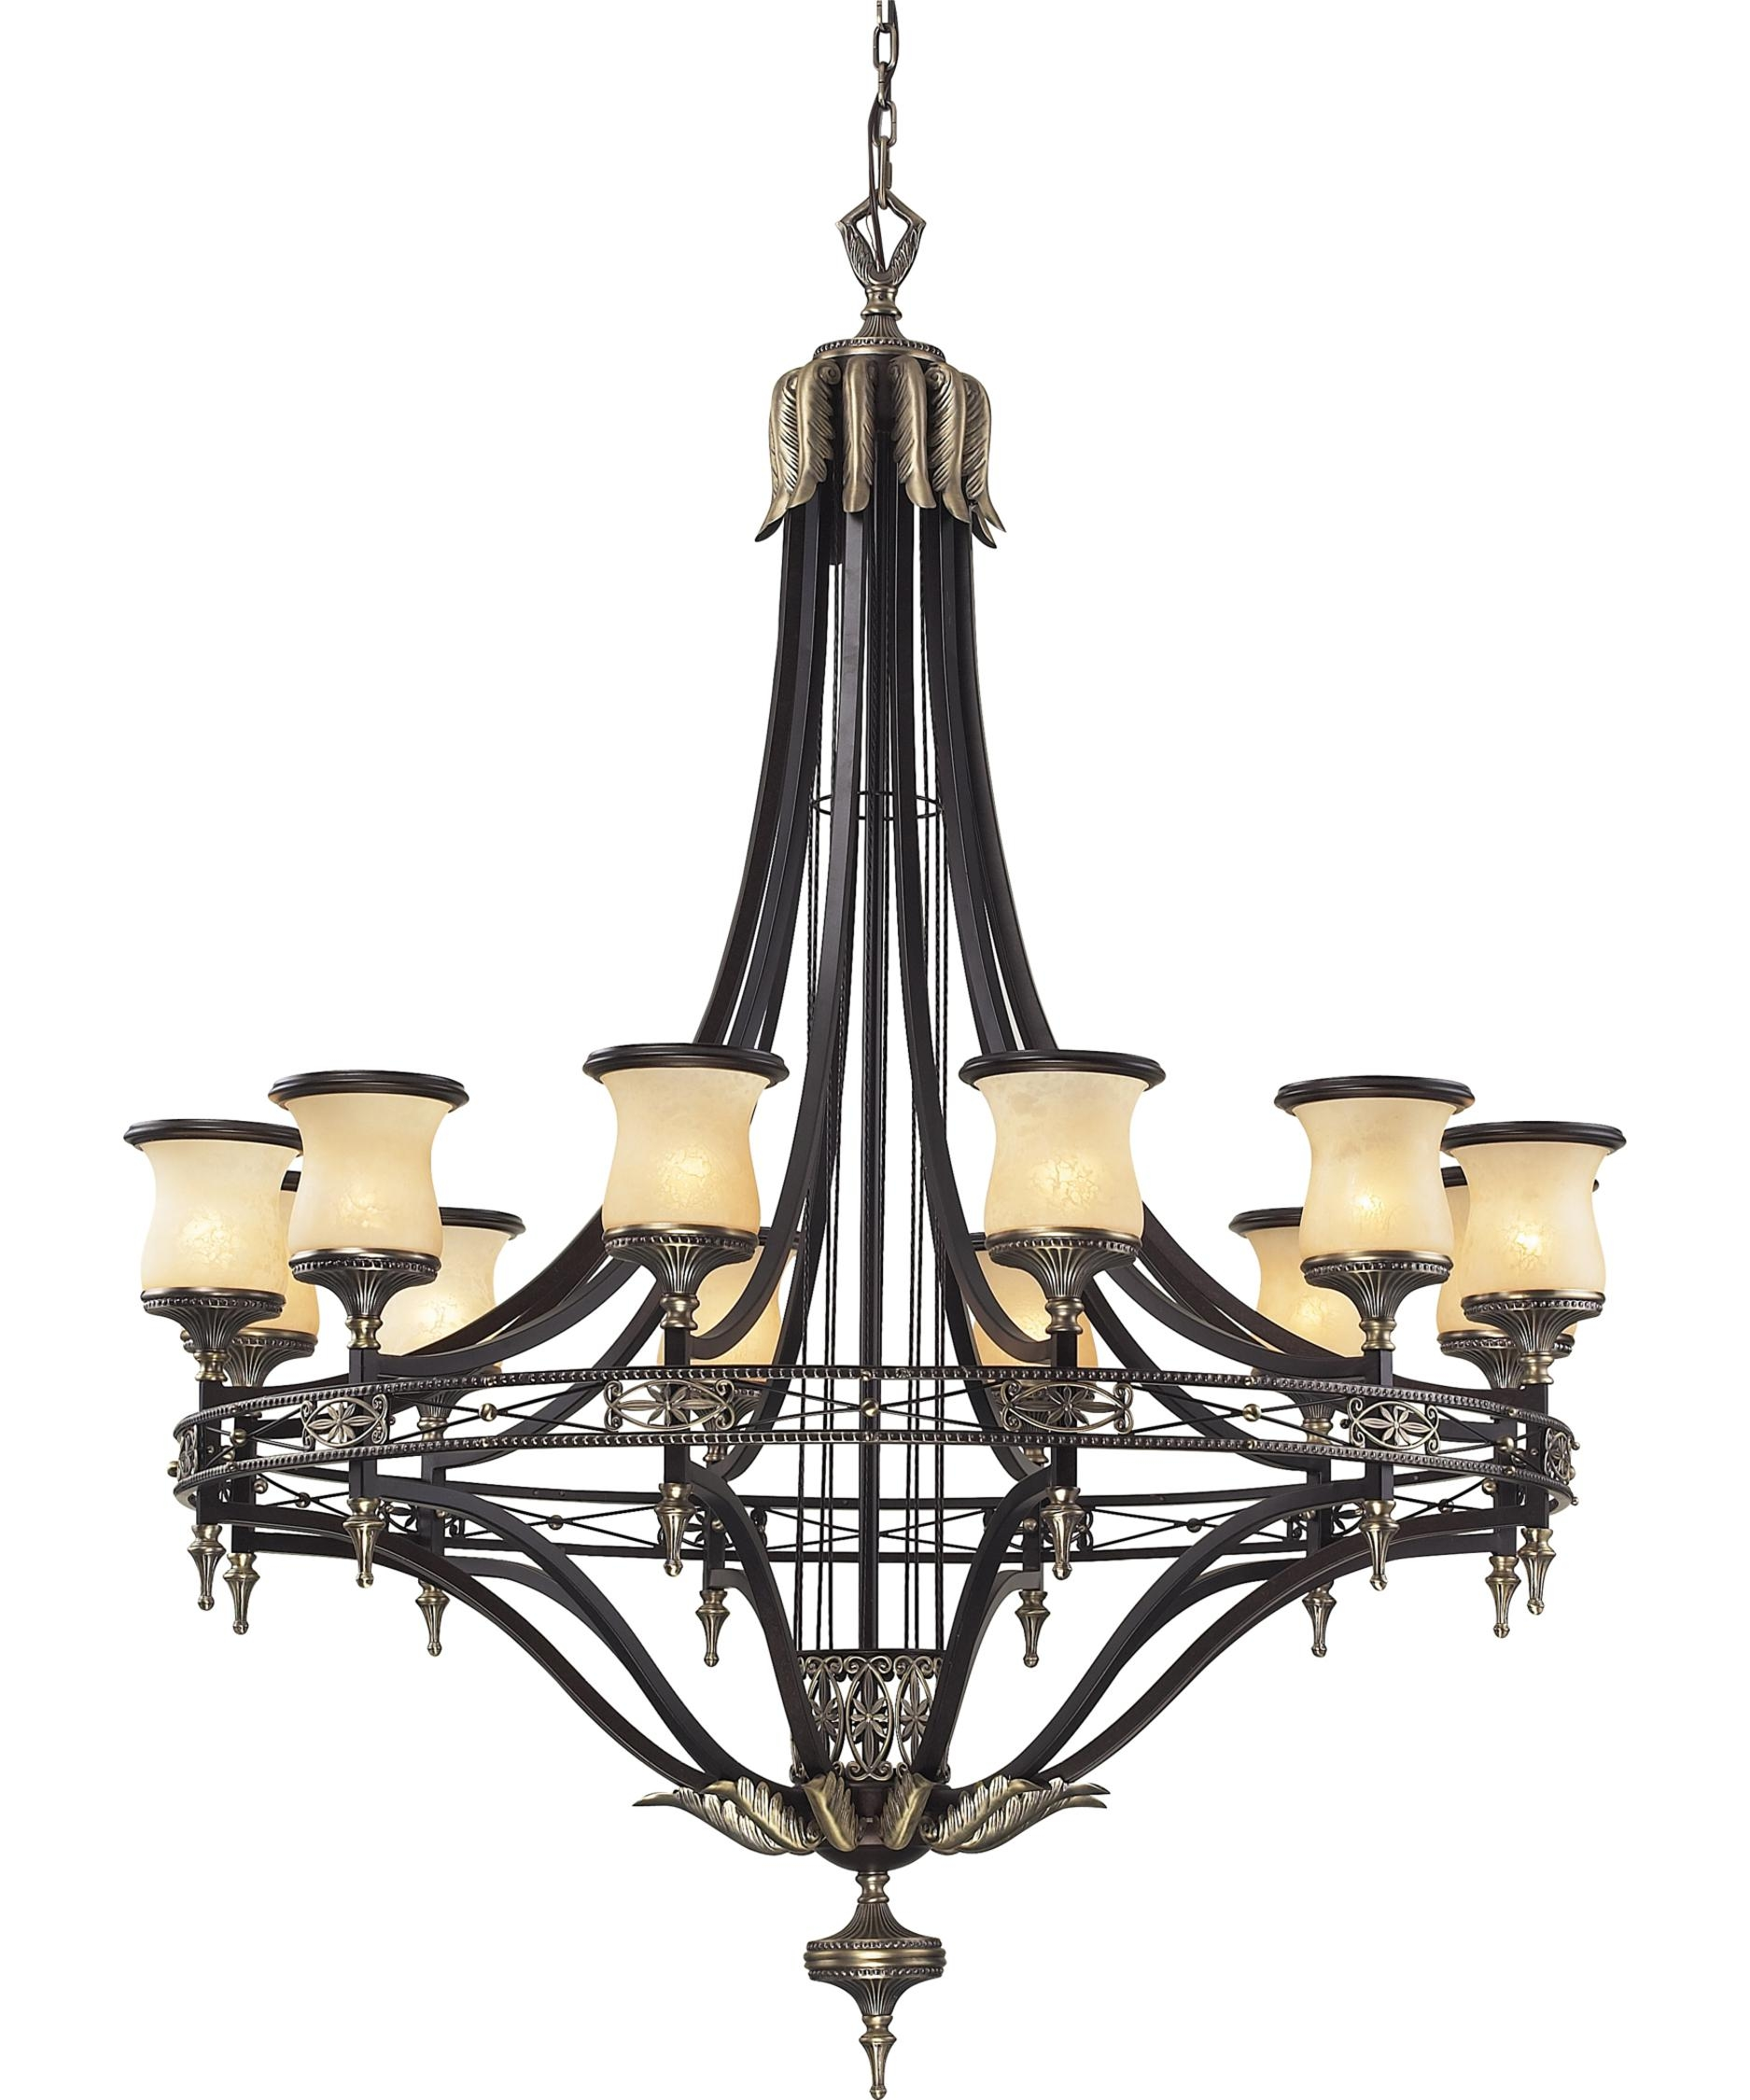 Elk Lighting 2434 12 Georgian Court 48 Inch Wide 12 Light Intended For Georgian Chandelier (Image 6 of 15)